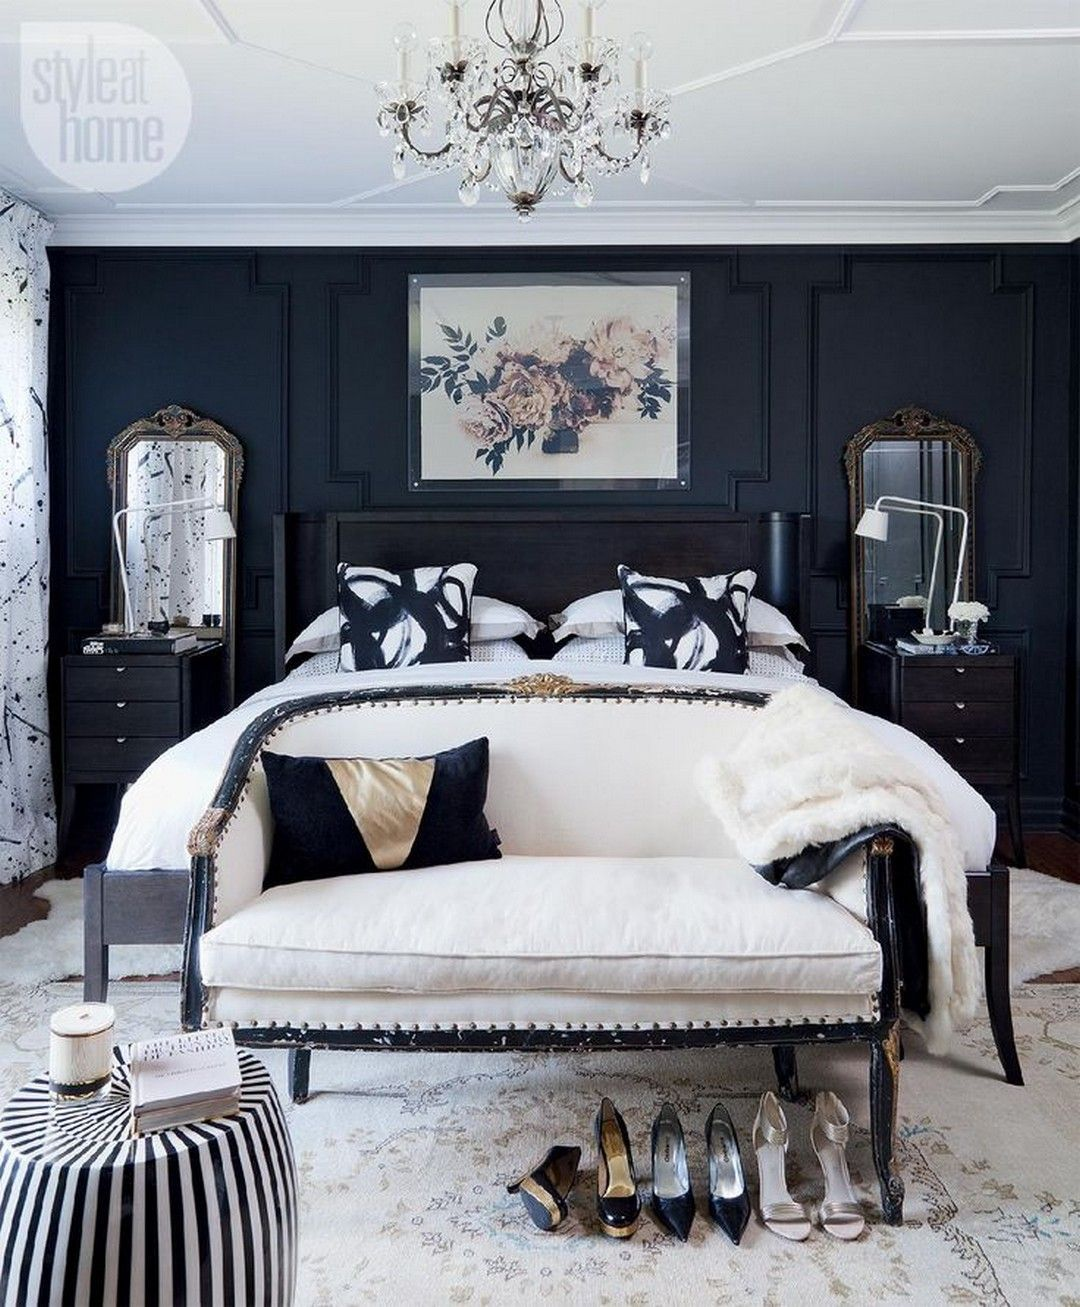 99 White And Grey Master Bedroom Interior Design  Http://philanthropyalamode.com/